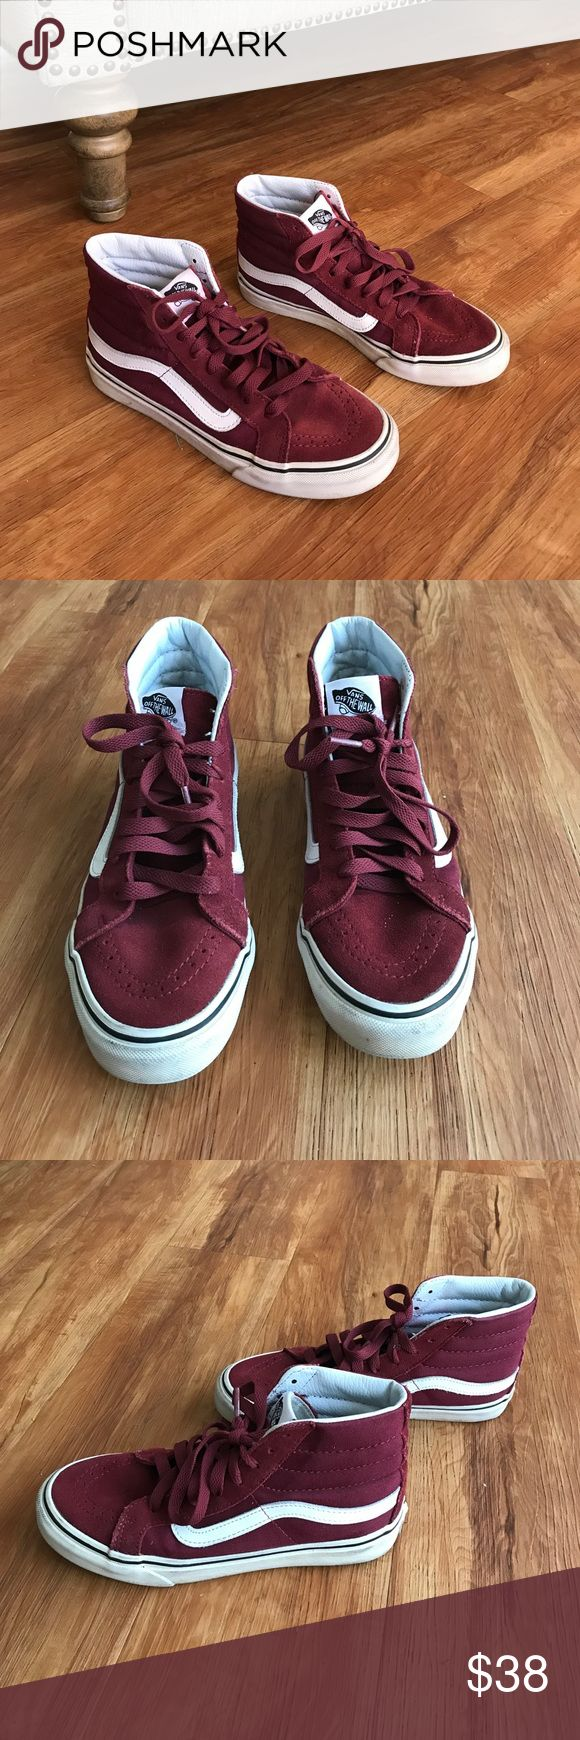 High too burgundy vans In really good condition. Size 6 in women. No trades. Offers welcome, but no low ballers. Vans Shoes